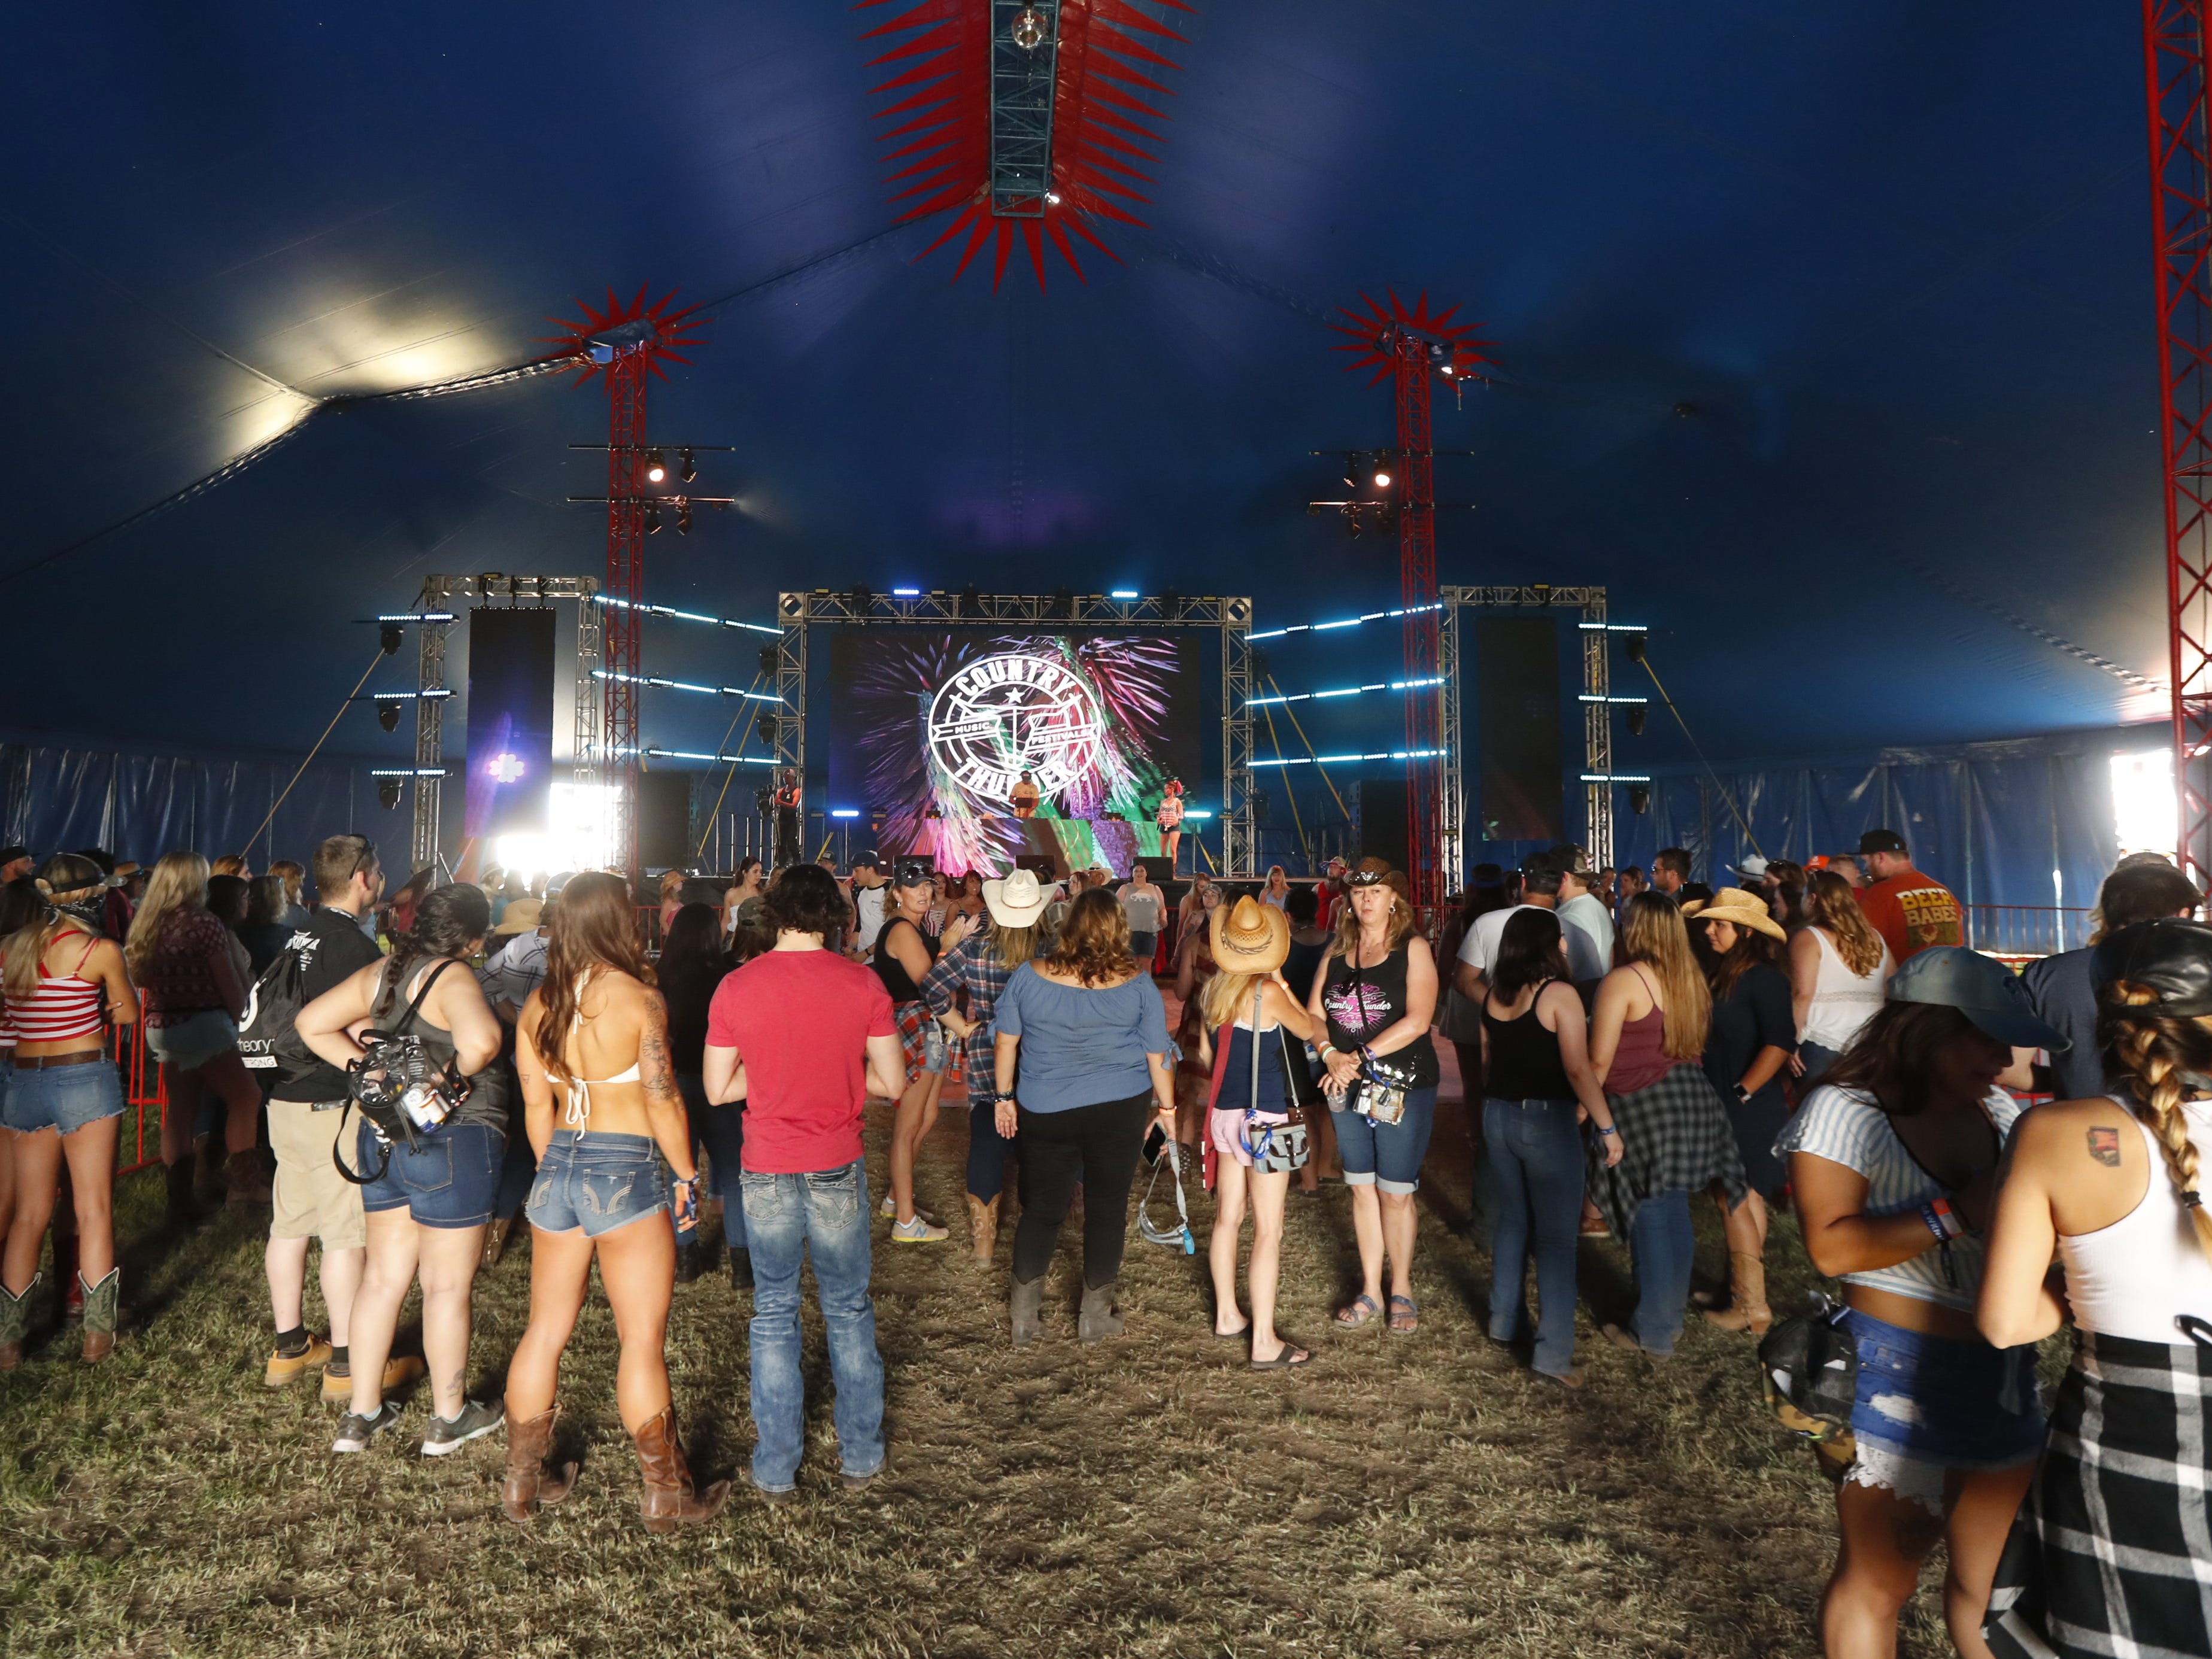 Country music fans watch as others dance at Electric Thunder tent during Country Thunder in Florence, Ariz., on Friday, April 12, 2019.